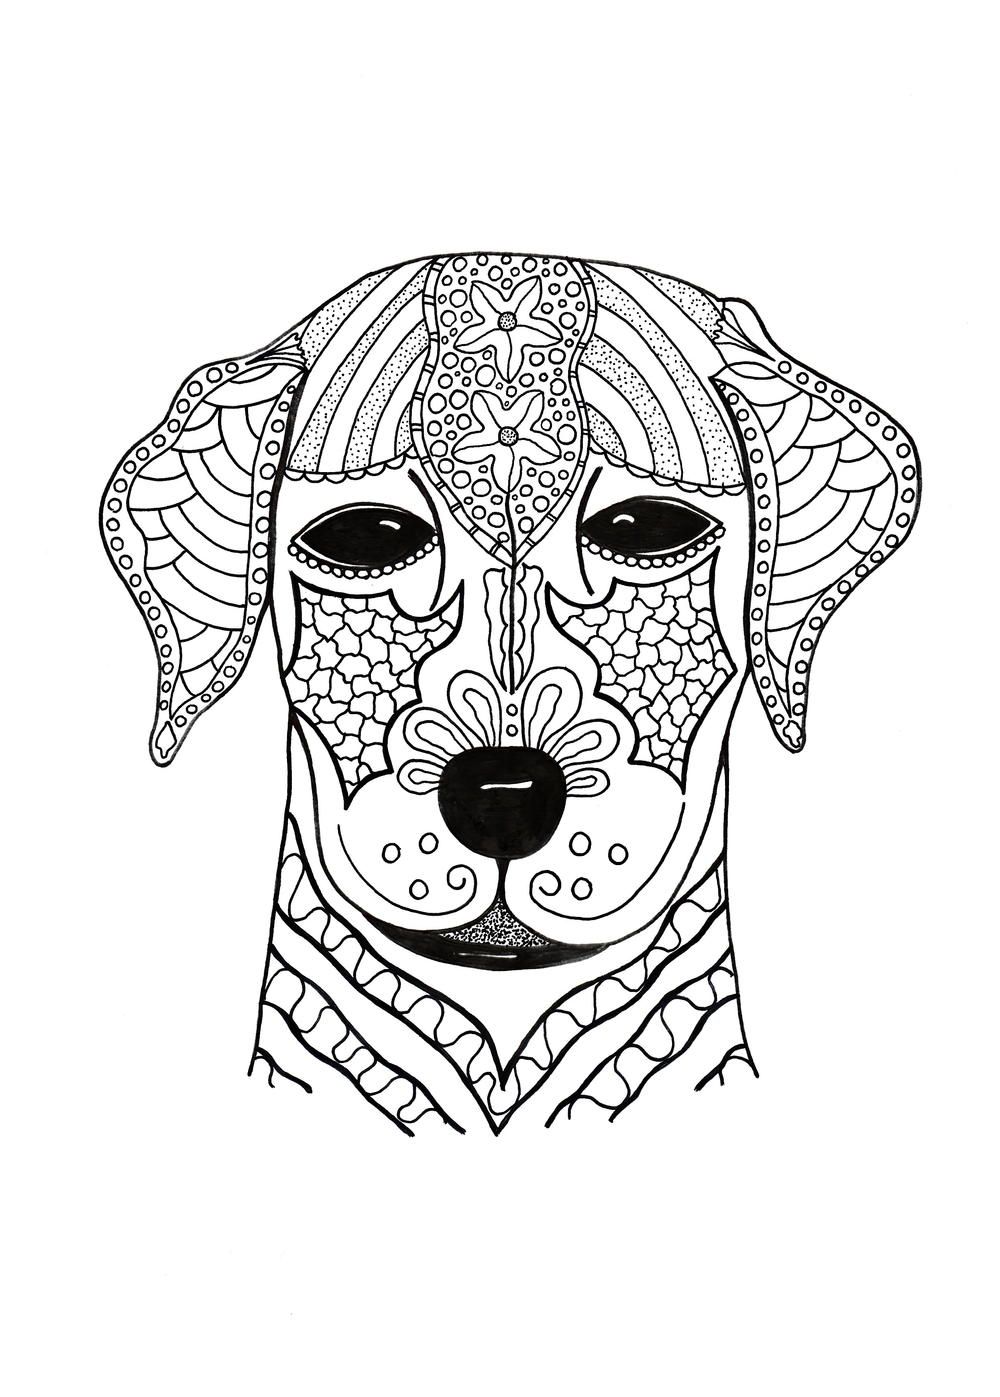 I Woof You Adult Coloring Page   FaveCrafts.com   colouring pages animals hard